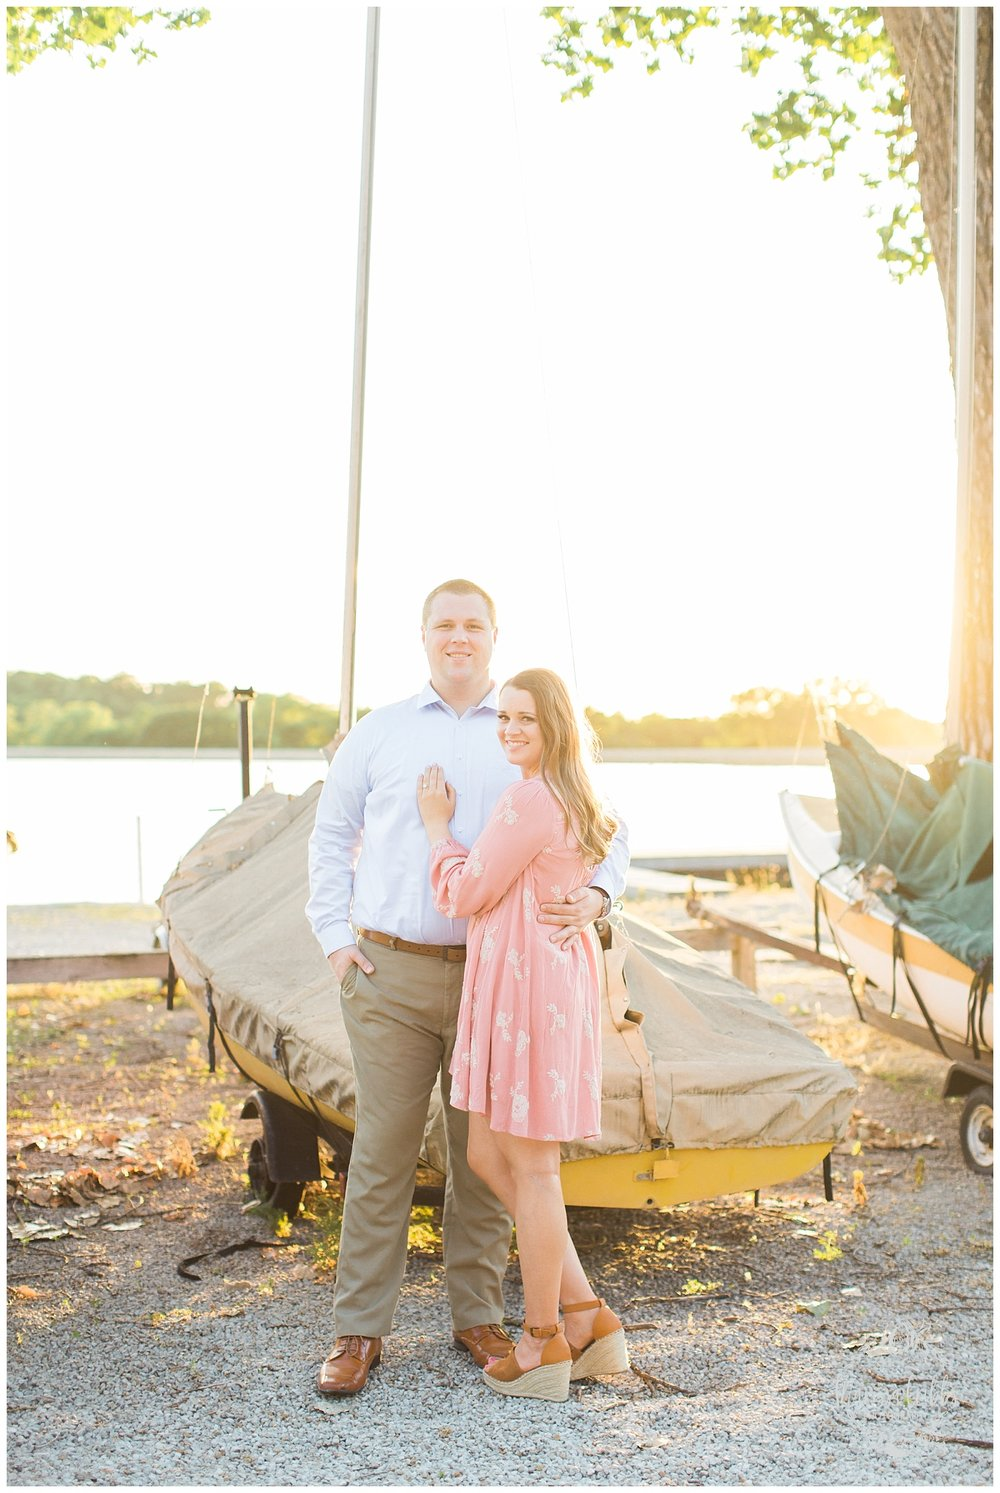 Morgan & Ryan Engaged | Lake Quivira Engagement Photography | Marissa Cribbs Photography_1556.jpg